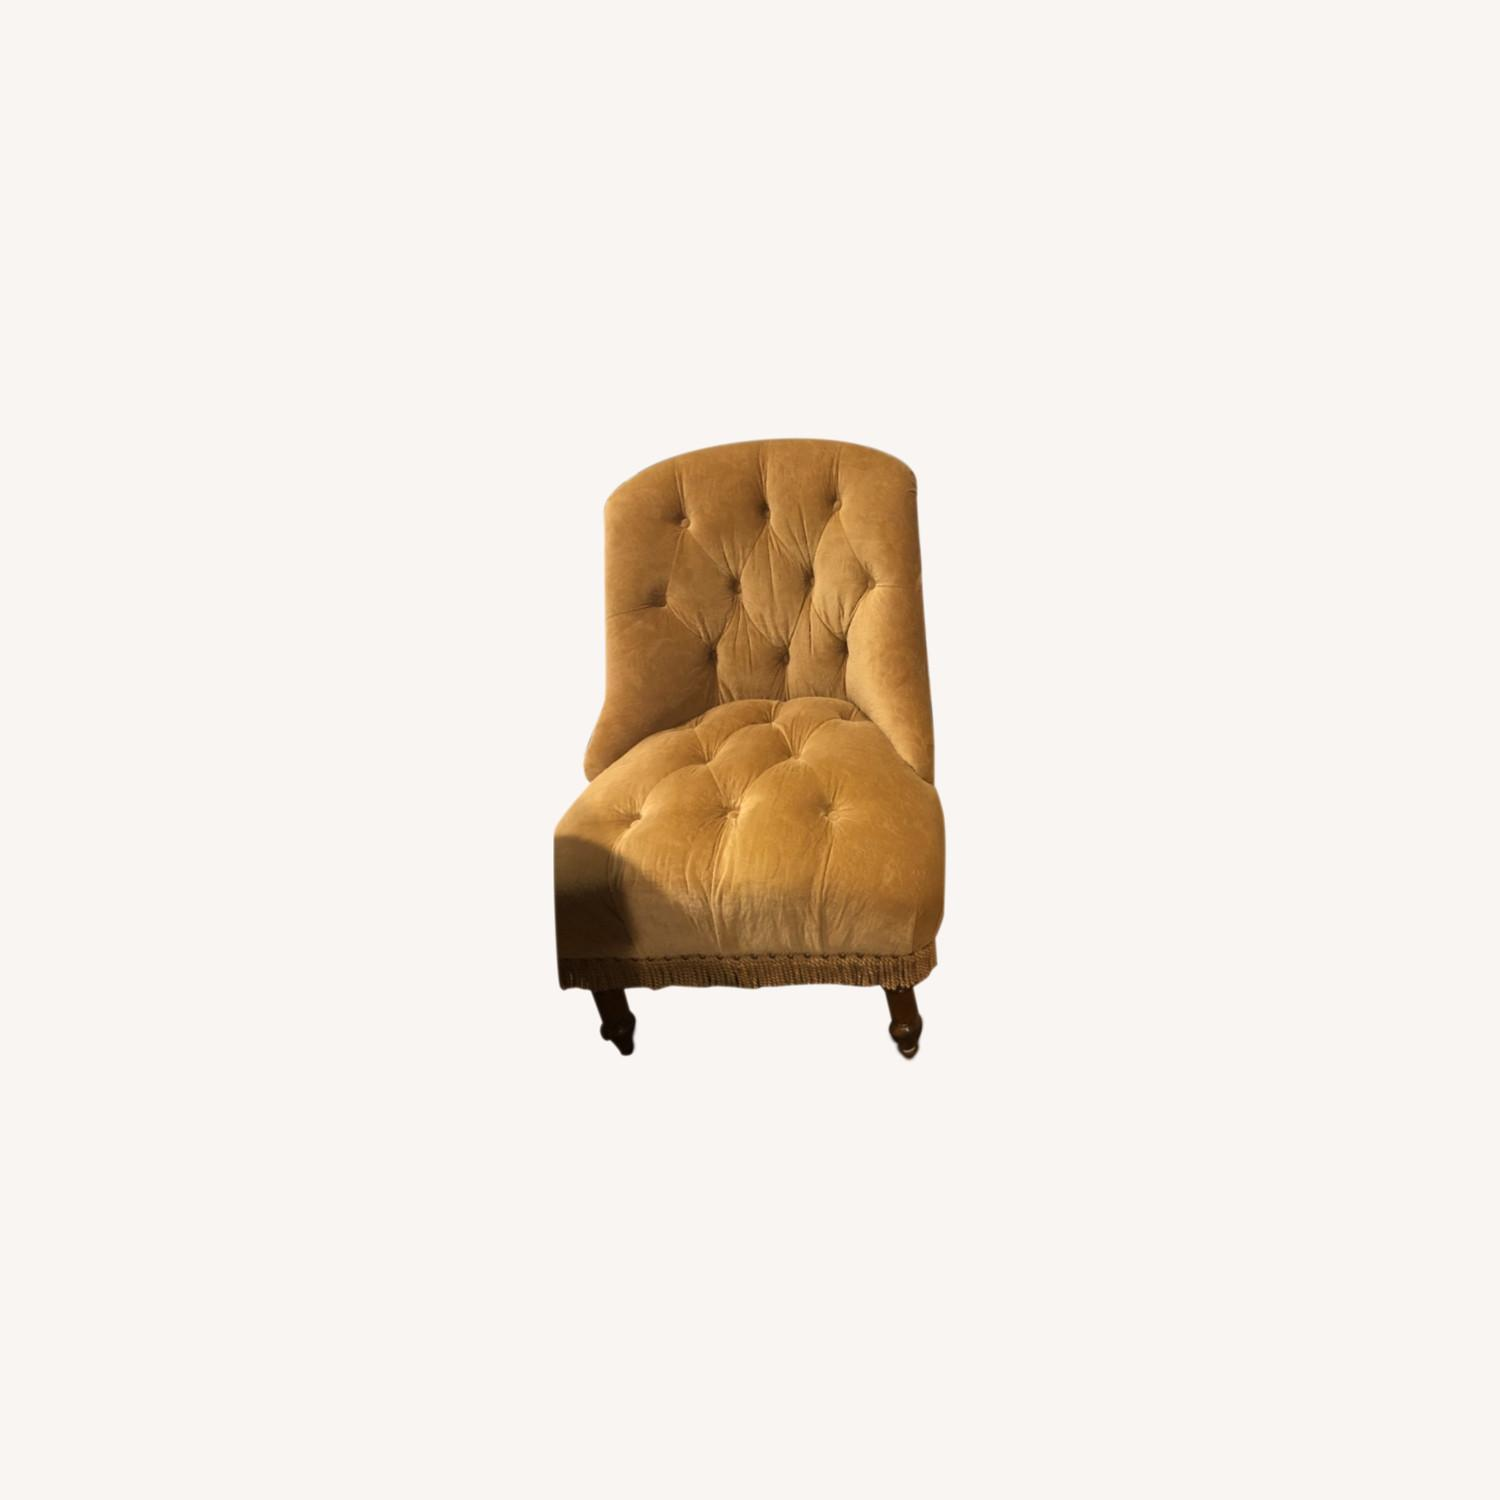 Peter Andrews Accent Chairs - image-0